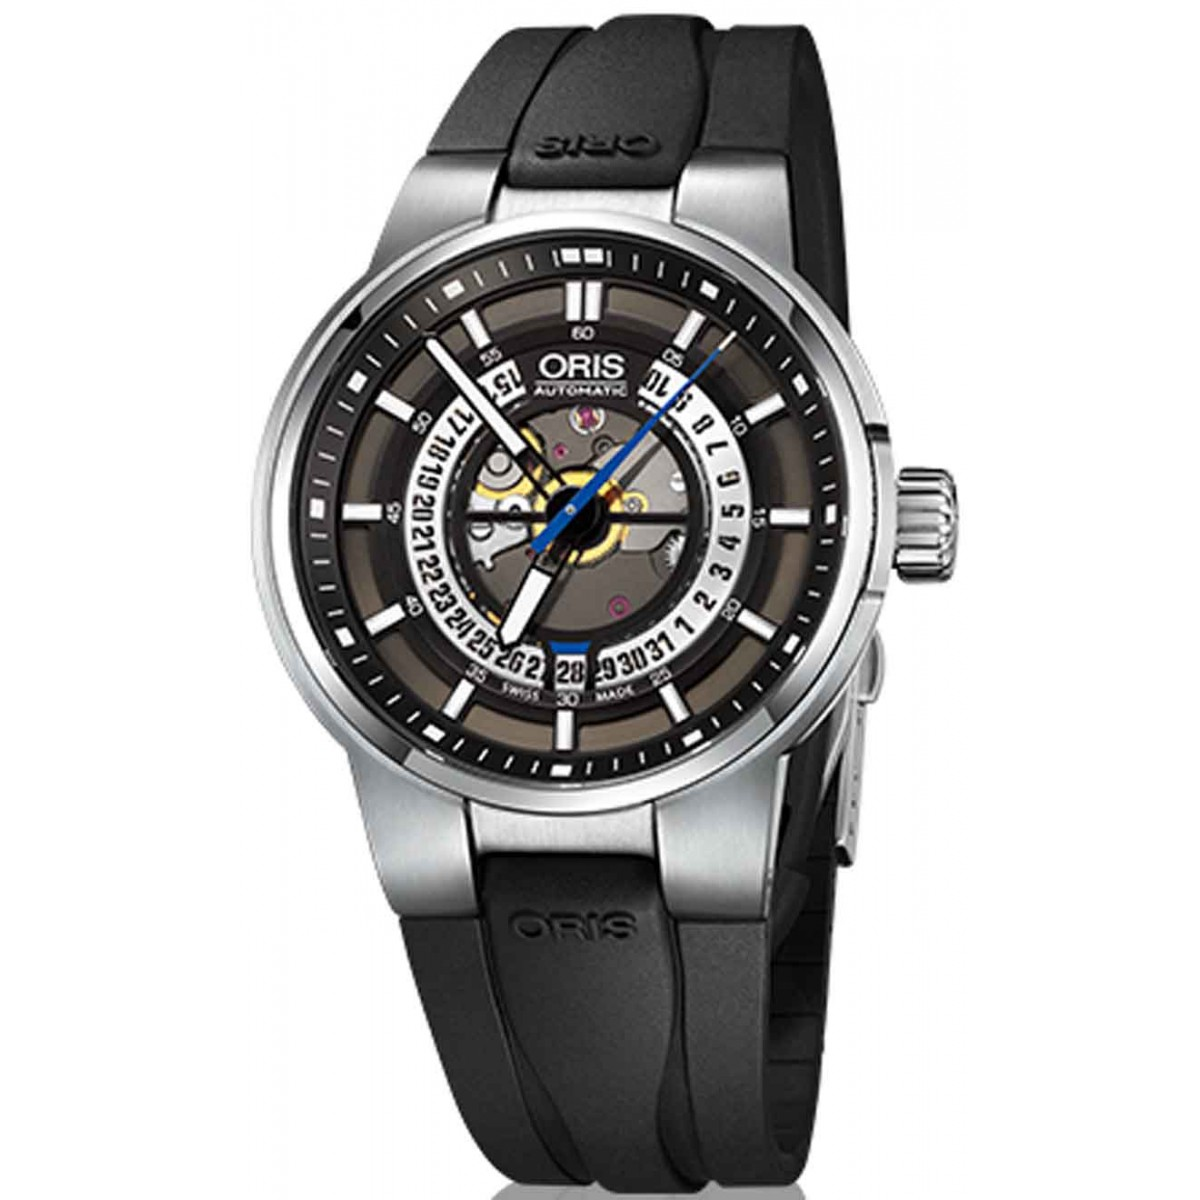 Oris Williams Engine Date - 100 M ∅42 mm, Automatico, Esfera Esqueleto, Caucho